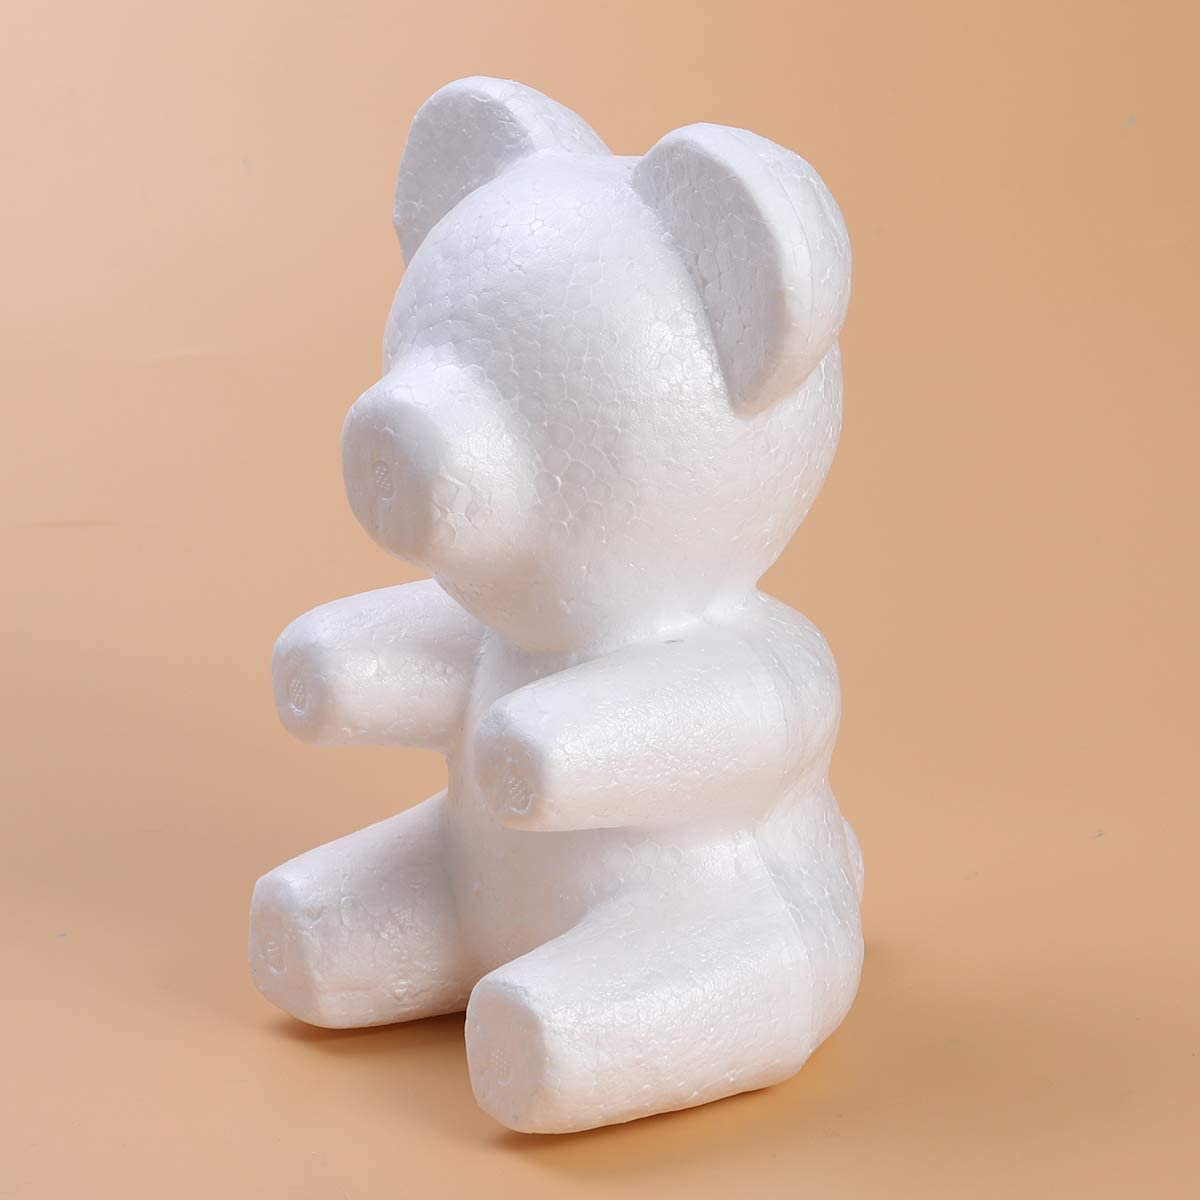 Amosfun 3pcs Foam Bear Shape Modelling Polystyrene Styrofoam Bear Mould White DIY Craft for Flower Arranging Gift Wedding Party Decoration 20cm x 13cm